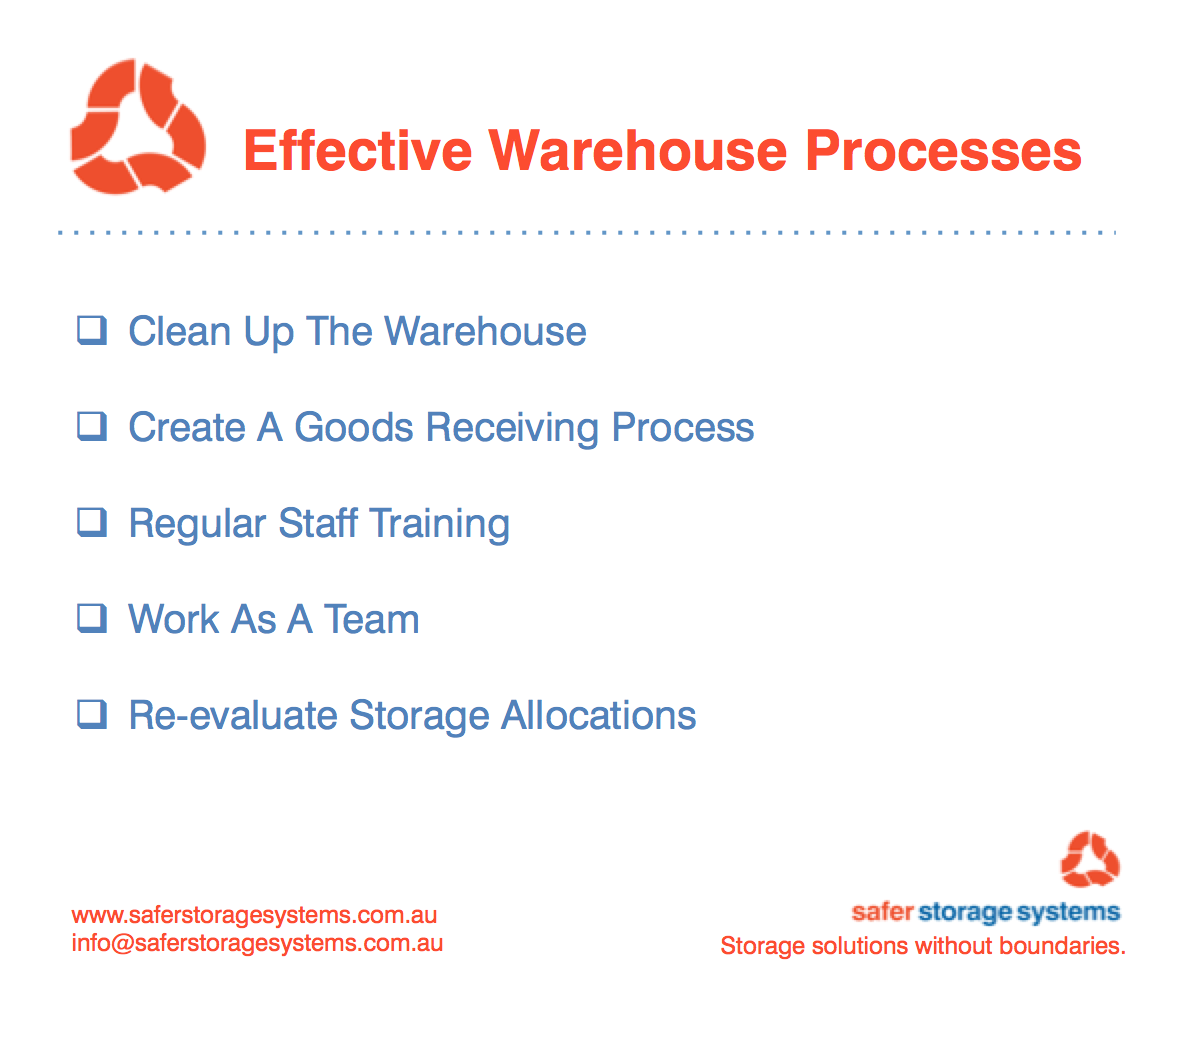 Effective Warehouse Processes - Safer Storage Systems Pallet Racking